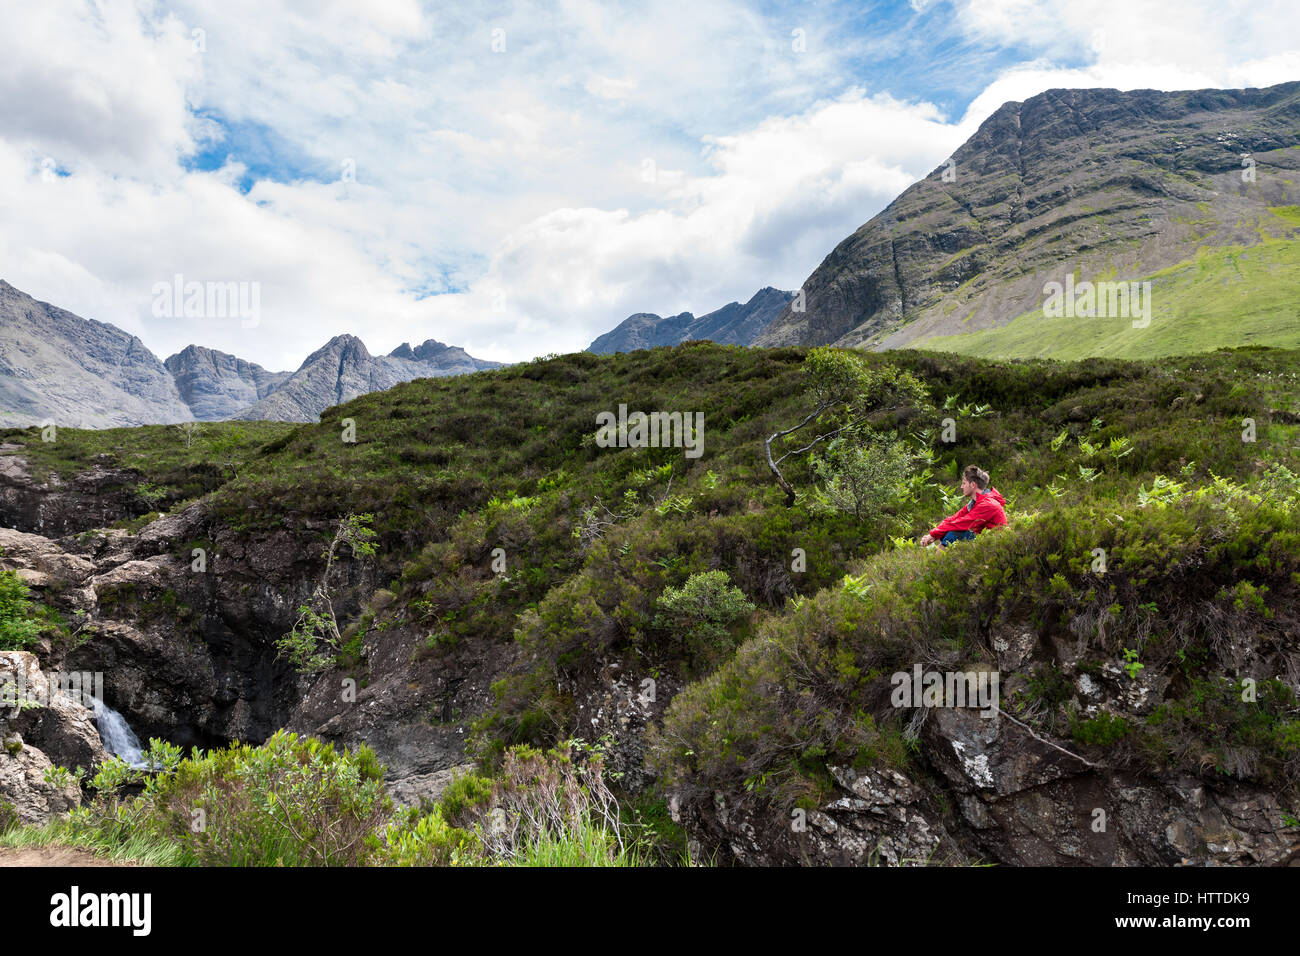 Unplugged, Man admiring the beauty of scottish nature - Stock Image